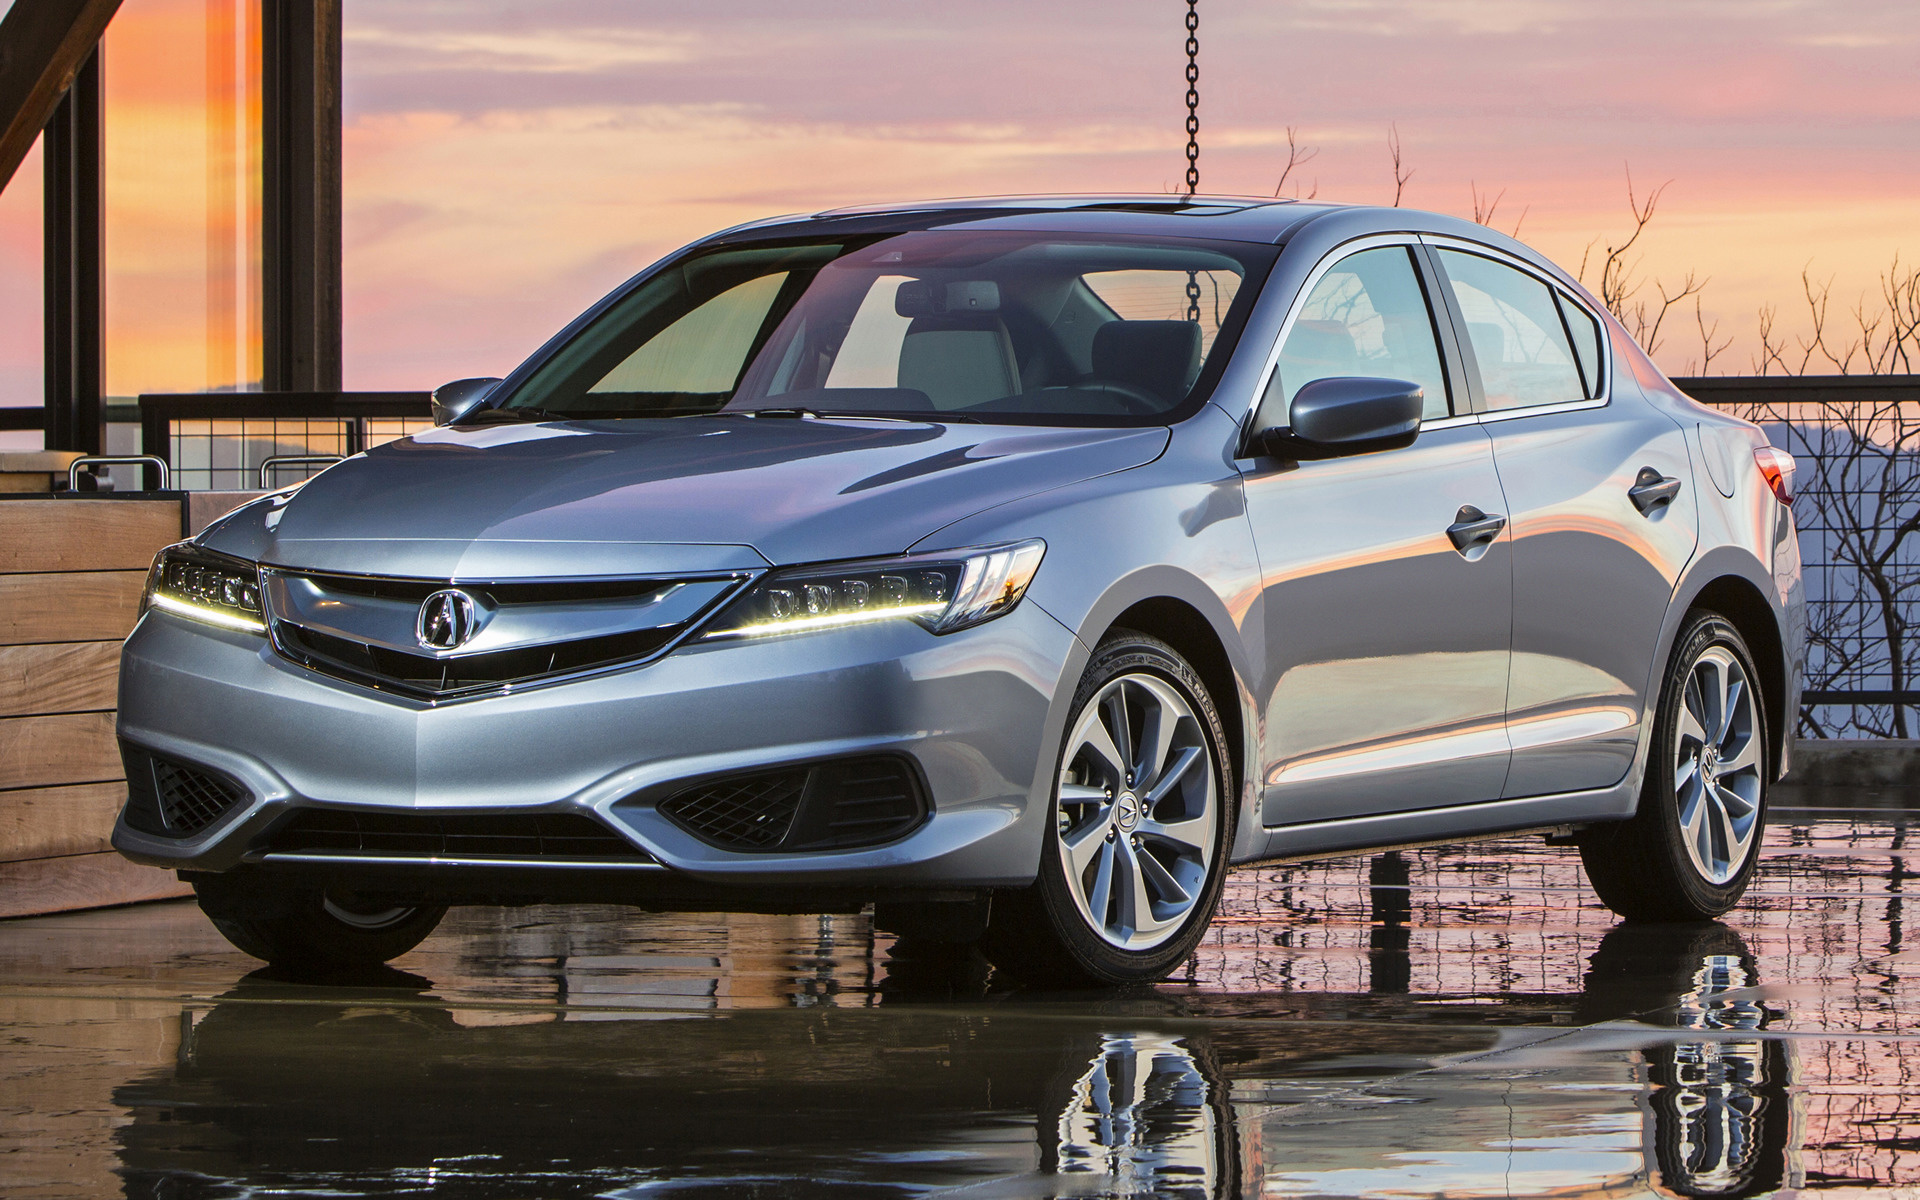 styling new include drive nose is standards test fast spectech elegant delivers quality what question ilx and sedan sporty eye updates whole the a acura review in now lane without car take spec jewel